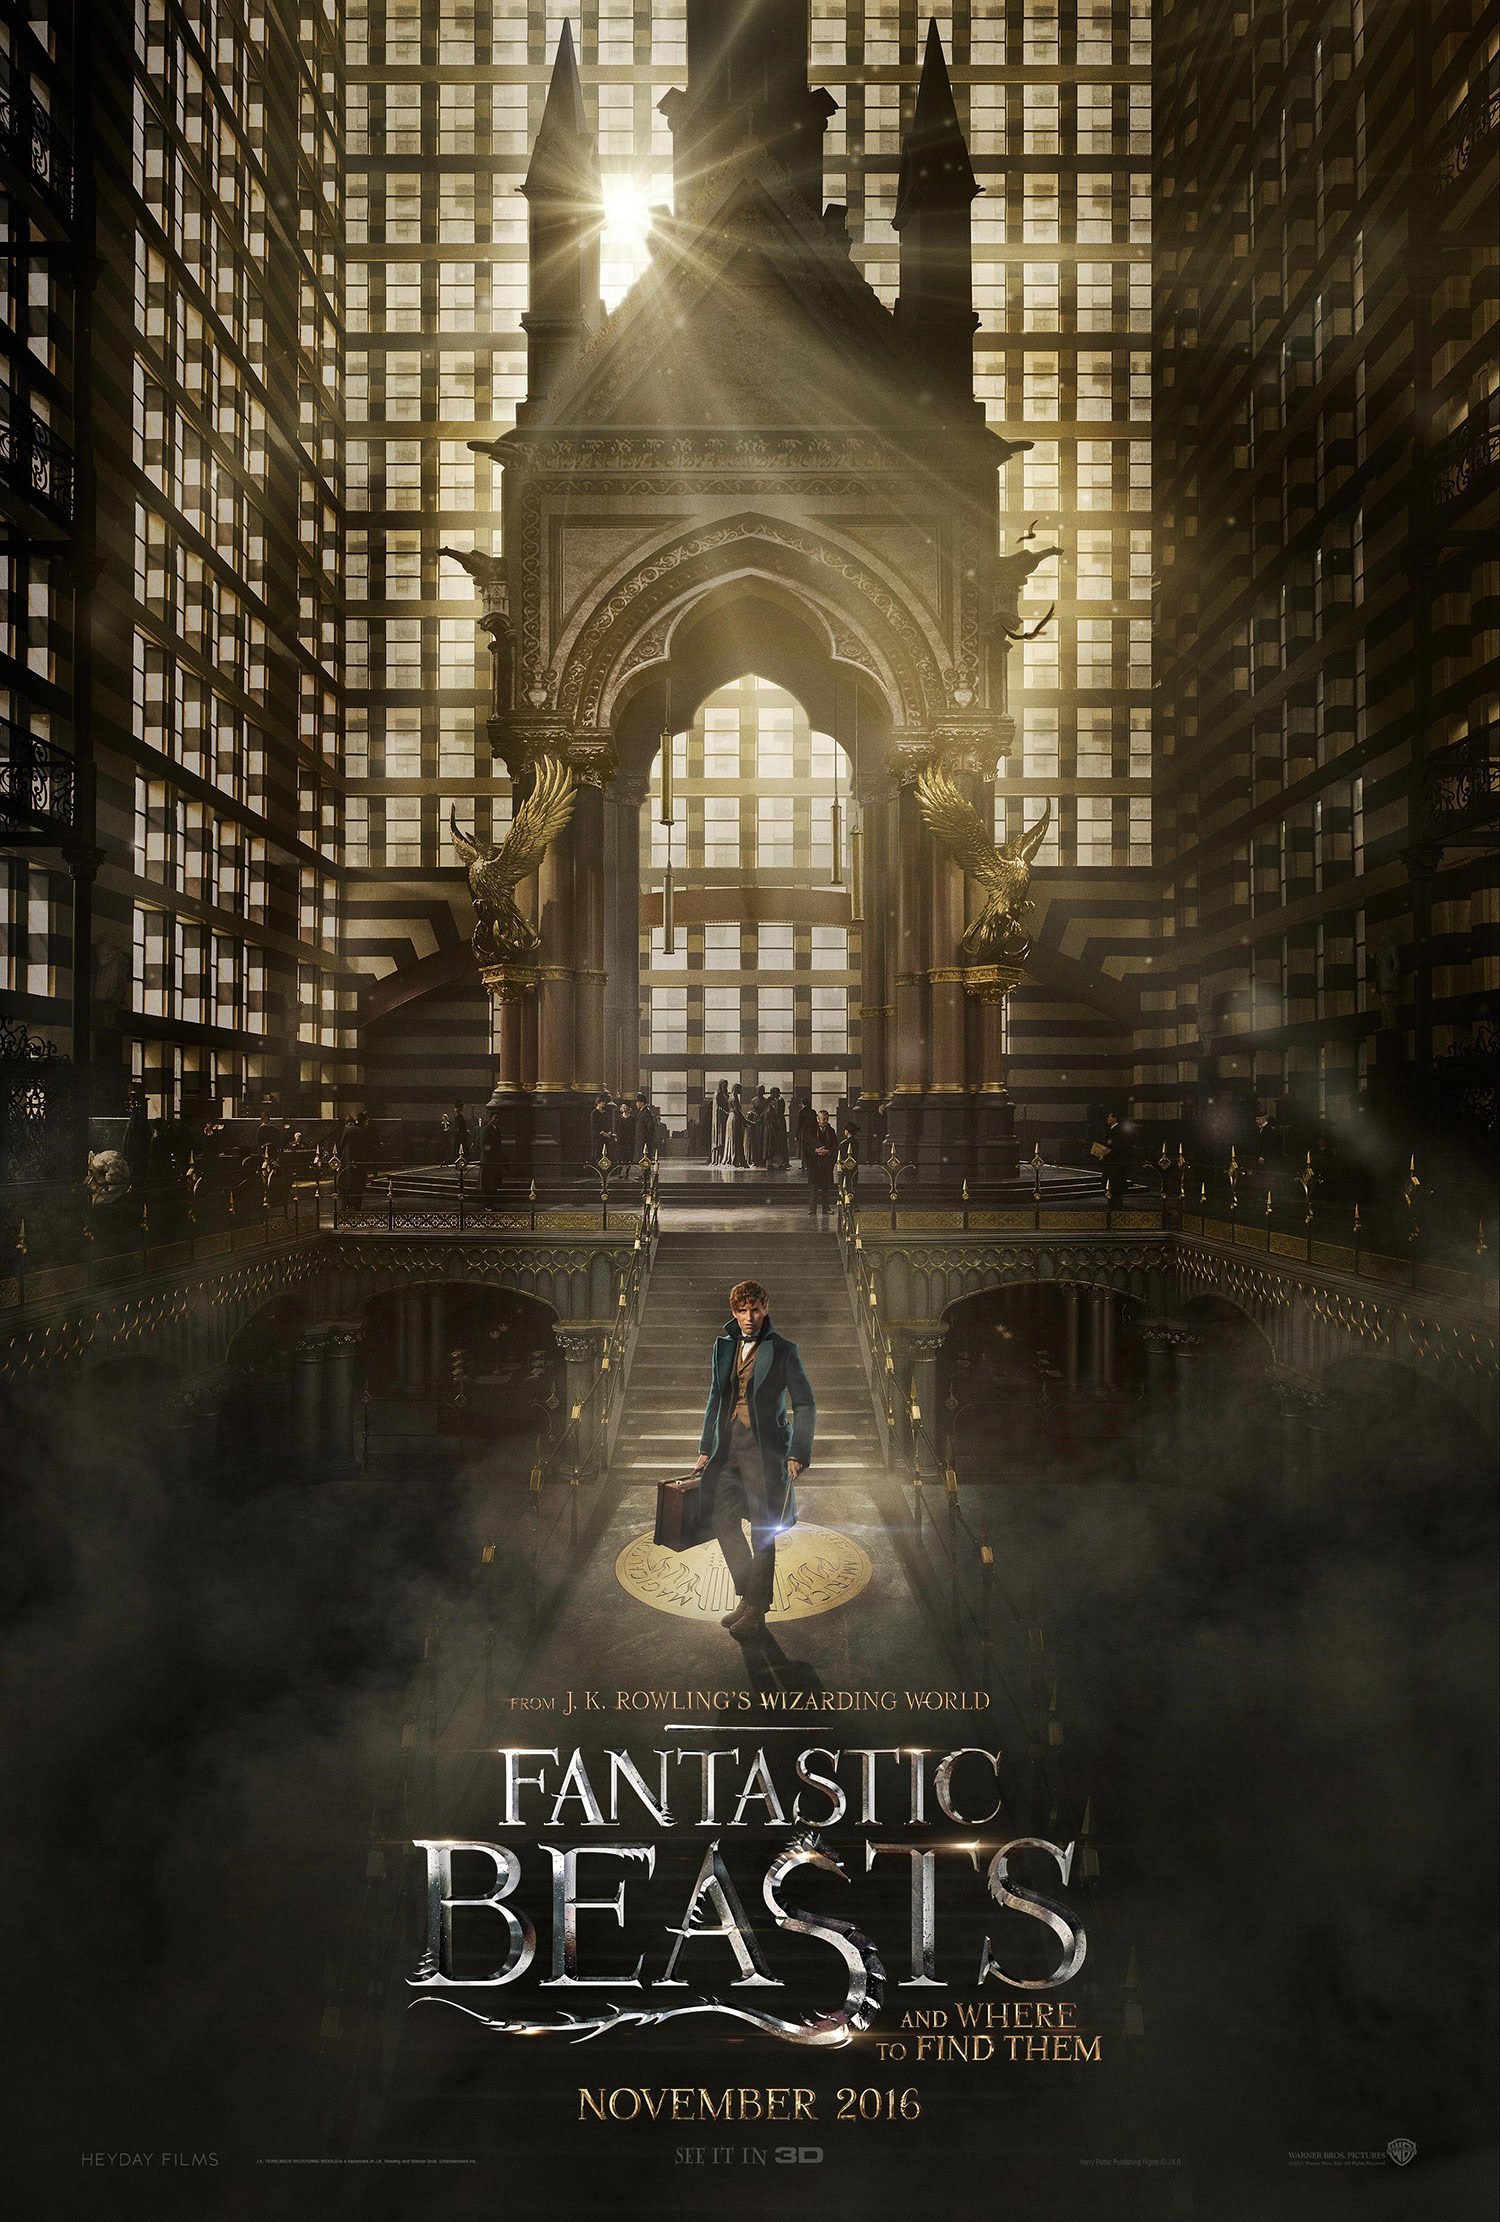 'Fantastic Beasts and Where to Find Them' poster